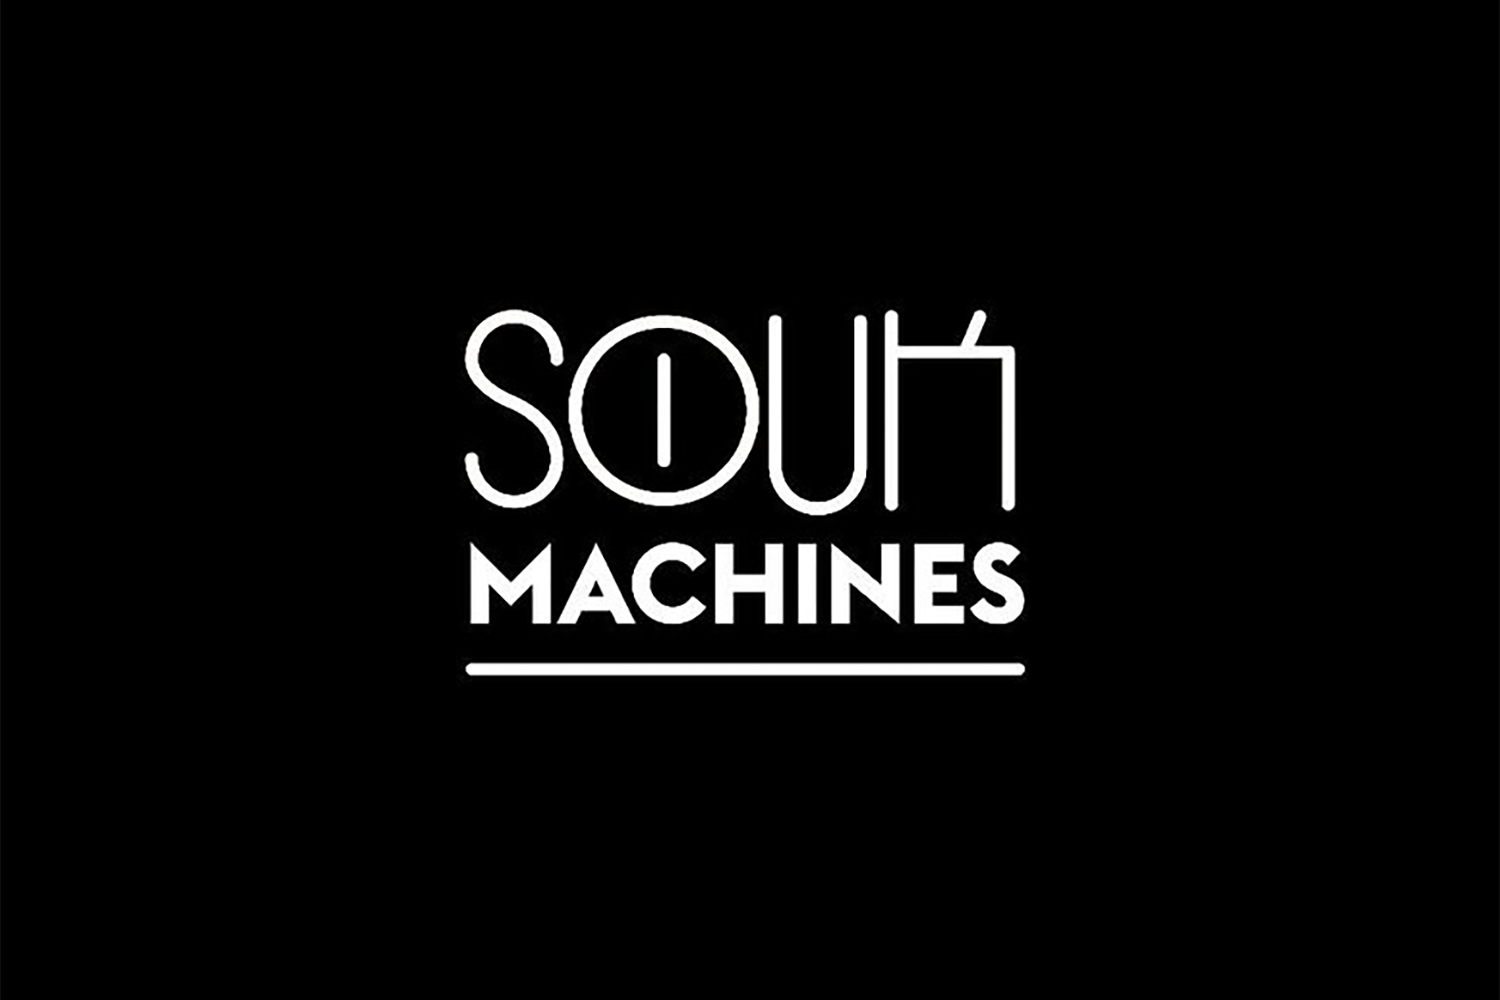 Souk Machine